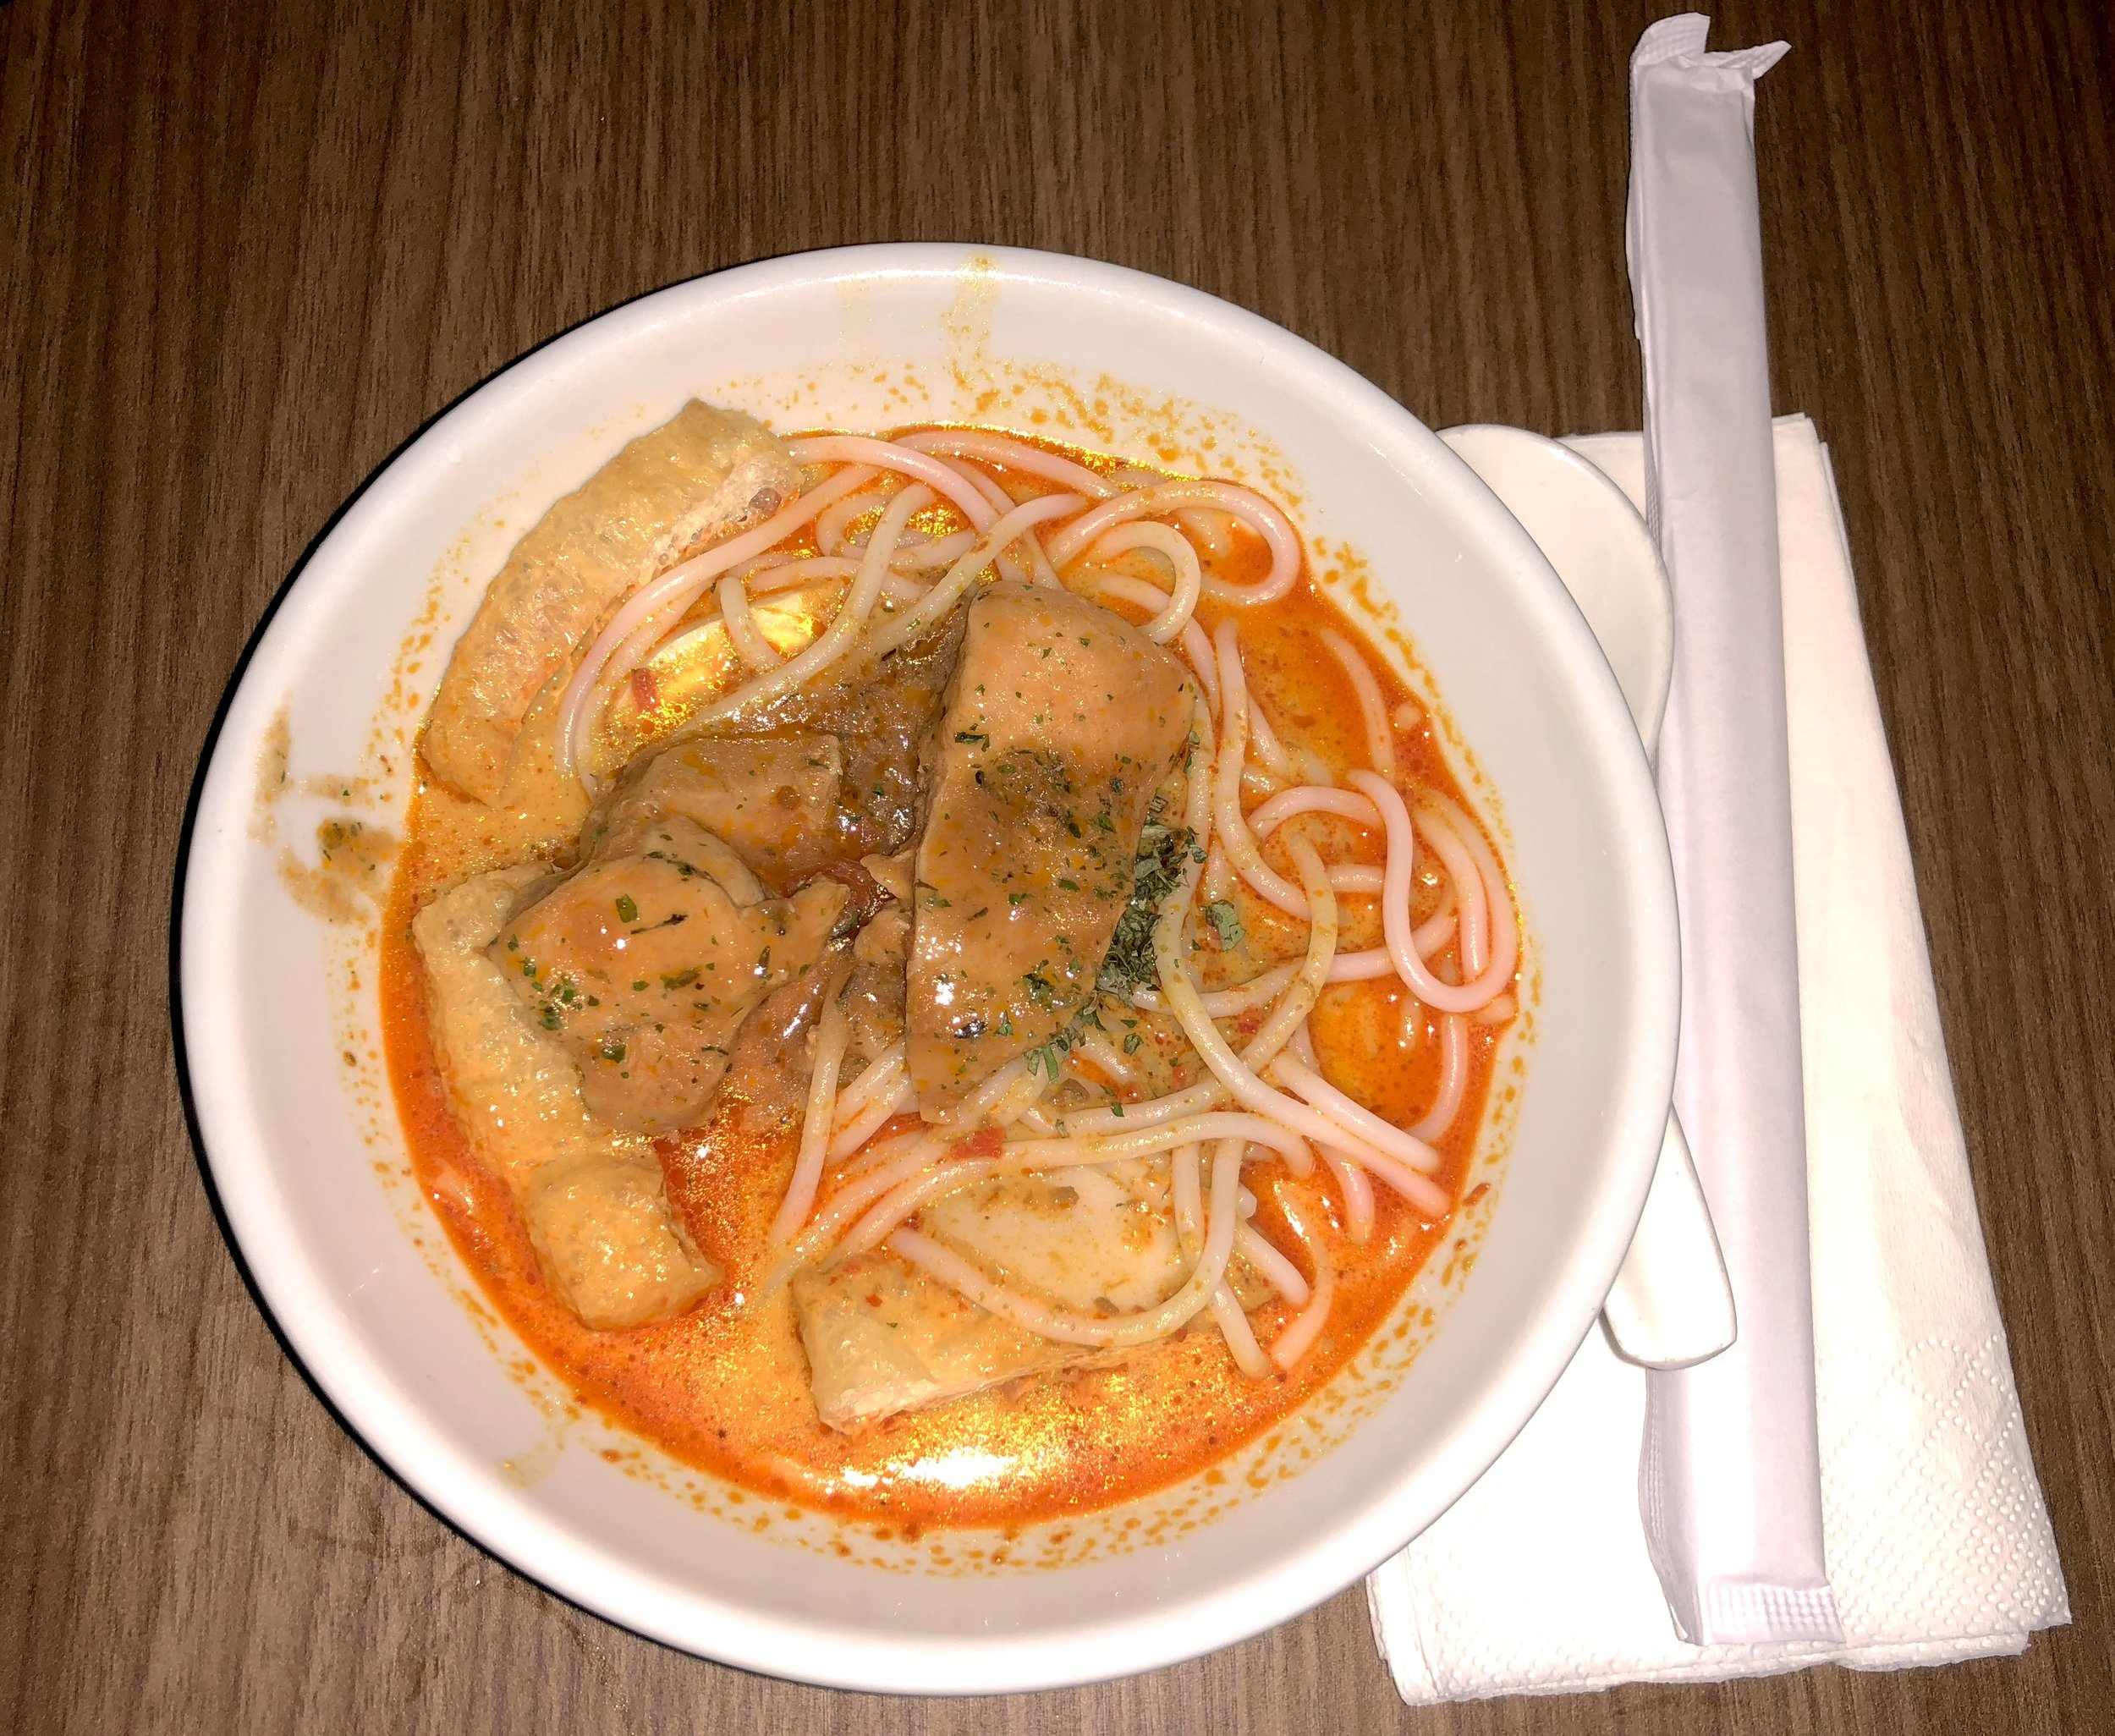 My own laksa after I diligently followed the instructions!